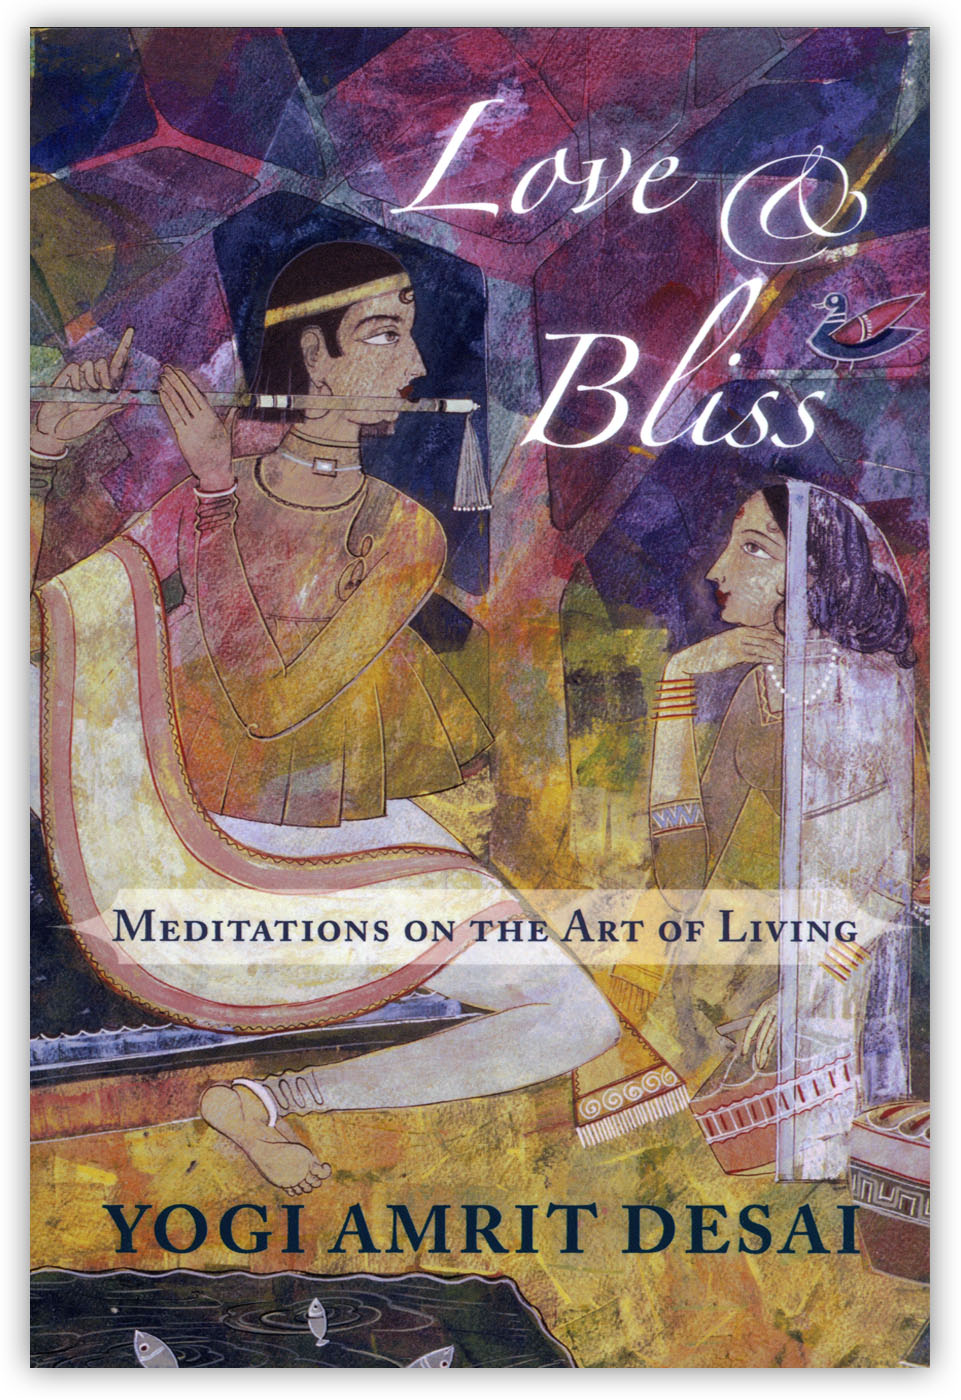 Love and Bliss by Yogi Amrit Desai